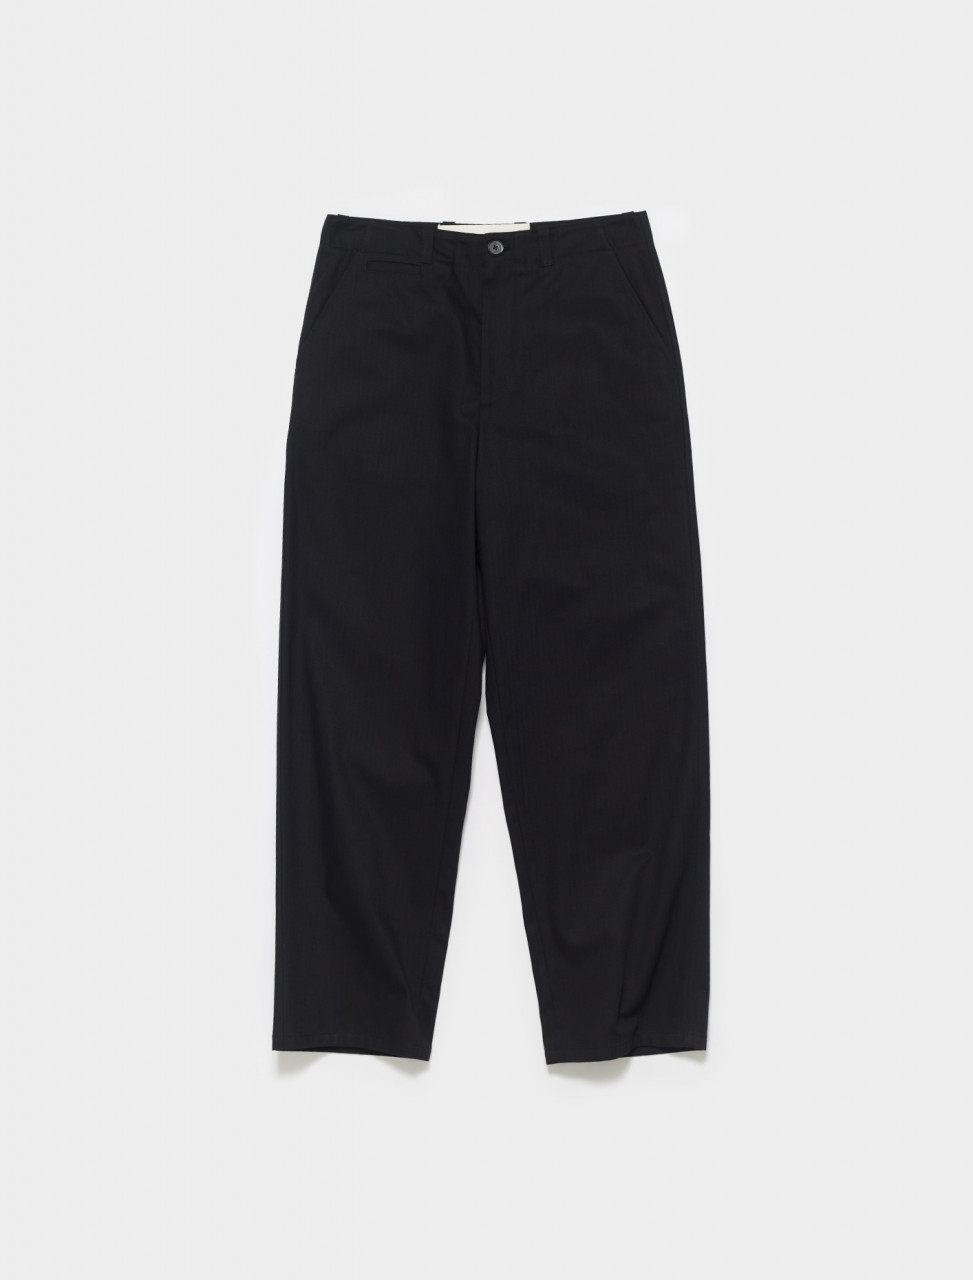 JPUS310305-MS241900-001 JIL SANDER COTTON CHINO TROUSERS IN BLACK